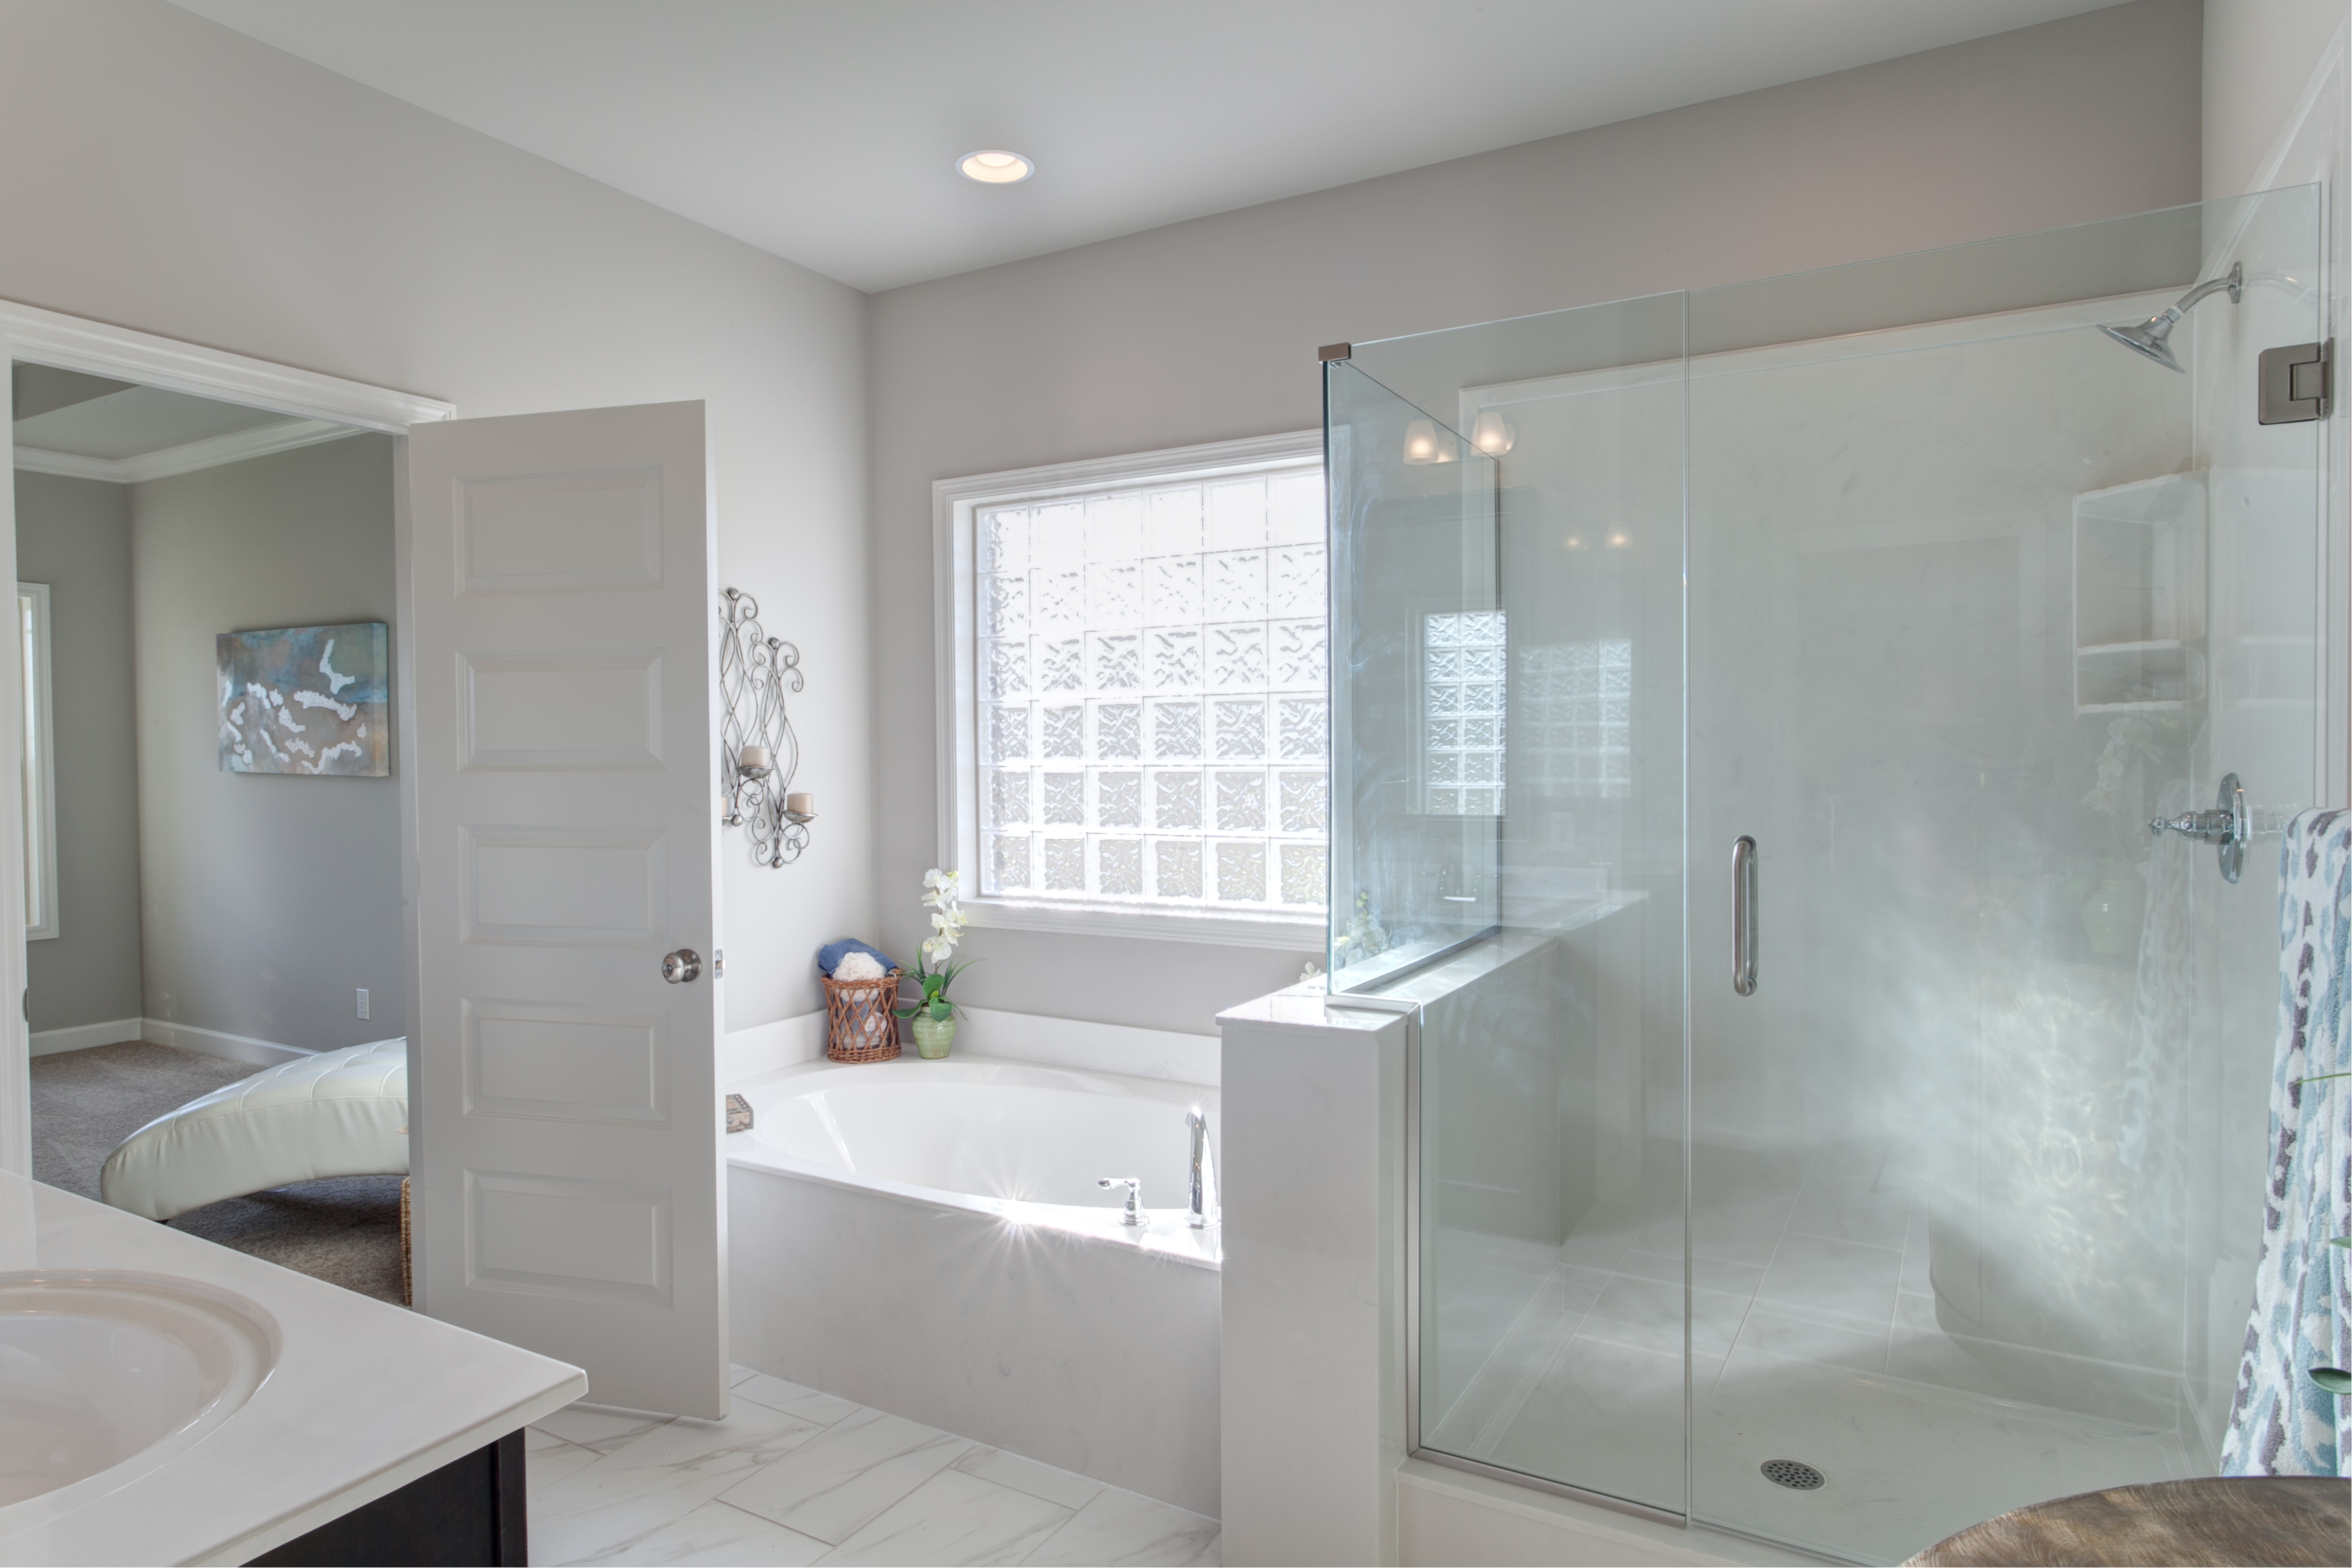 Amazing ... House Till Can No Longer Do So. Tubs Make This Much Harder. The Large  Walk In Showers Are Much More Practical When Thinking About The Future And  Getting ...